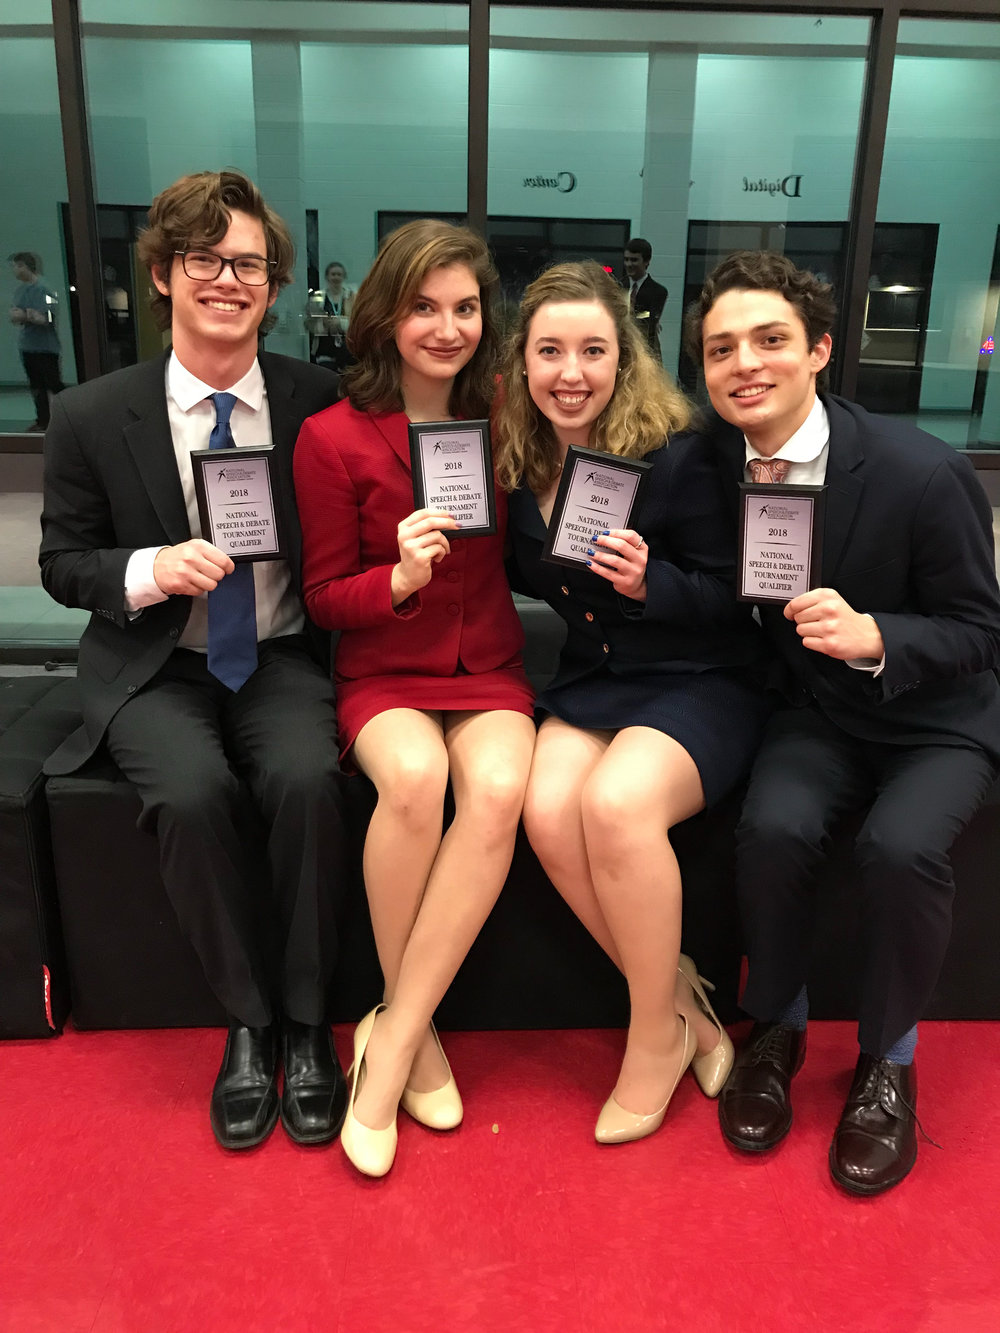 LTHS Speech and Debate students who qualified for National Speech & Debate Tournament: (left to right)  Evan Margiotta -senior,  Julia Belov -junior,  Christy Caudle -senior,  Nicholas Martinez -junior